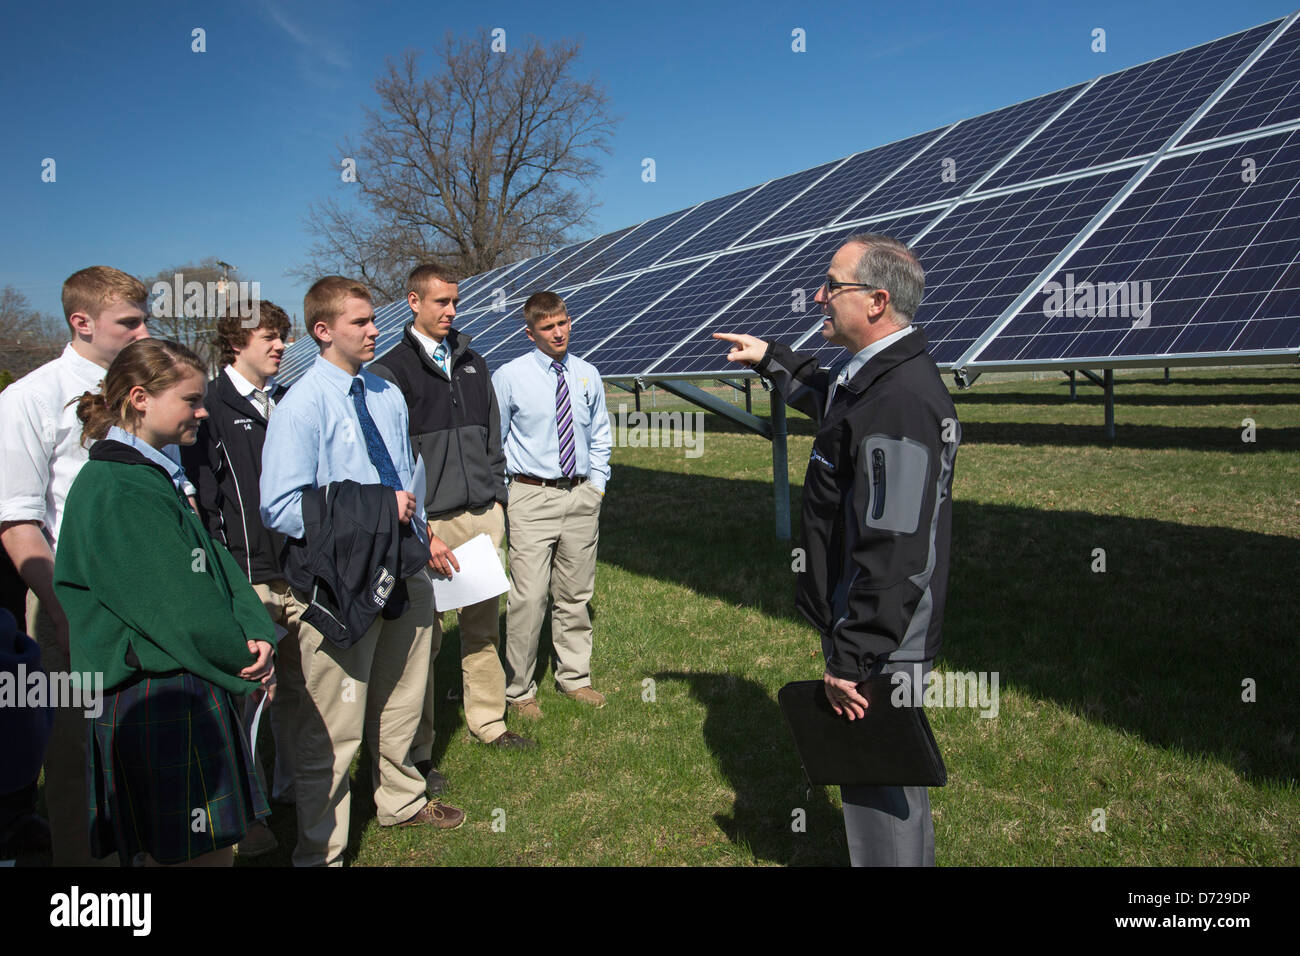 Catholic High School Students Learn About A Solar Energy Project